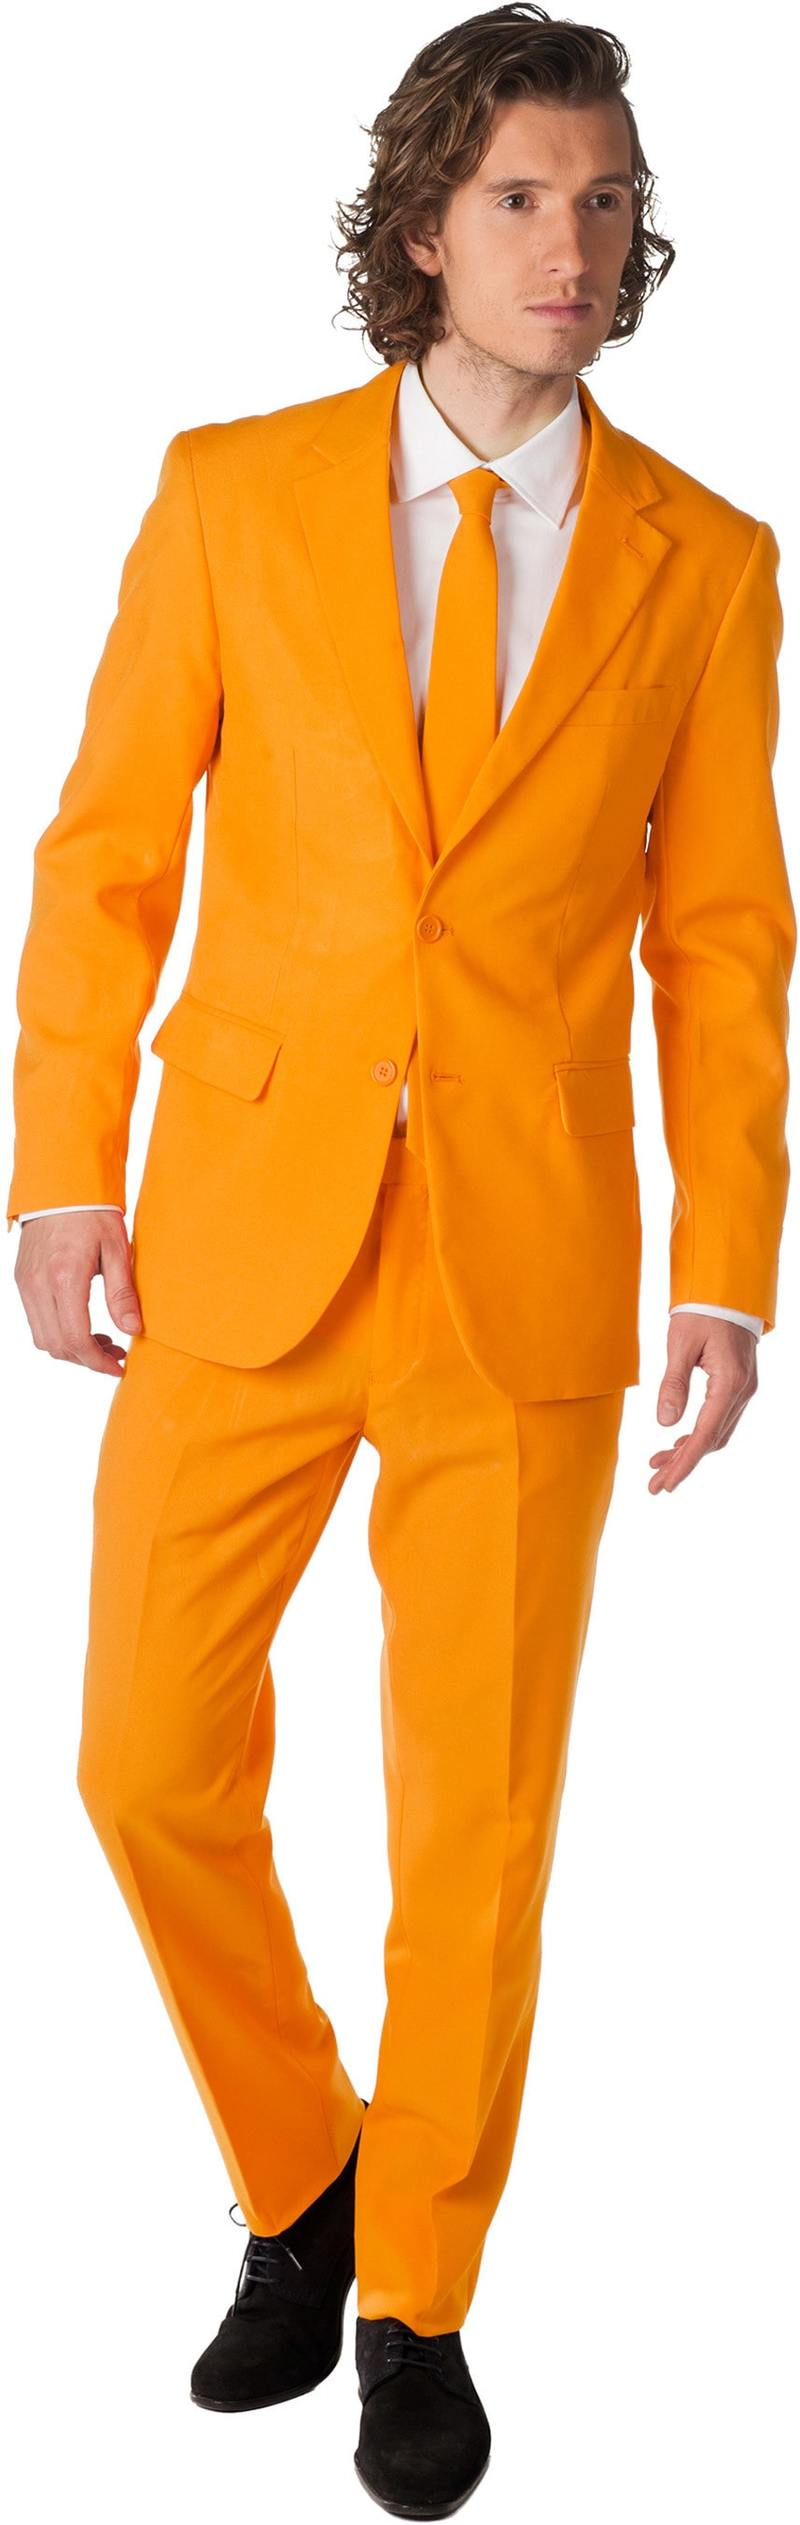 OppoSuits Orange Suit photo 0